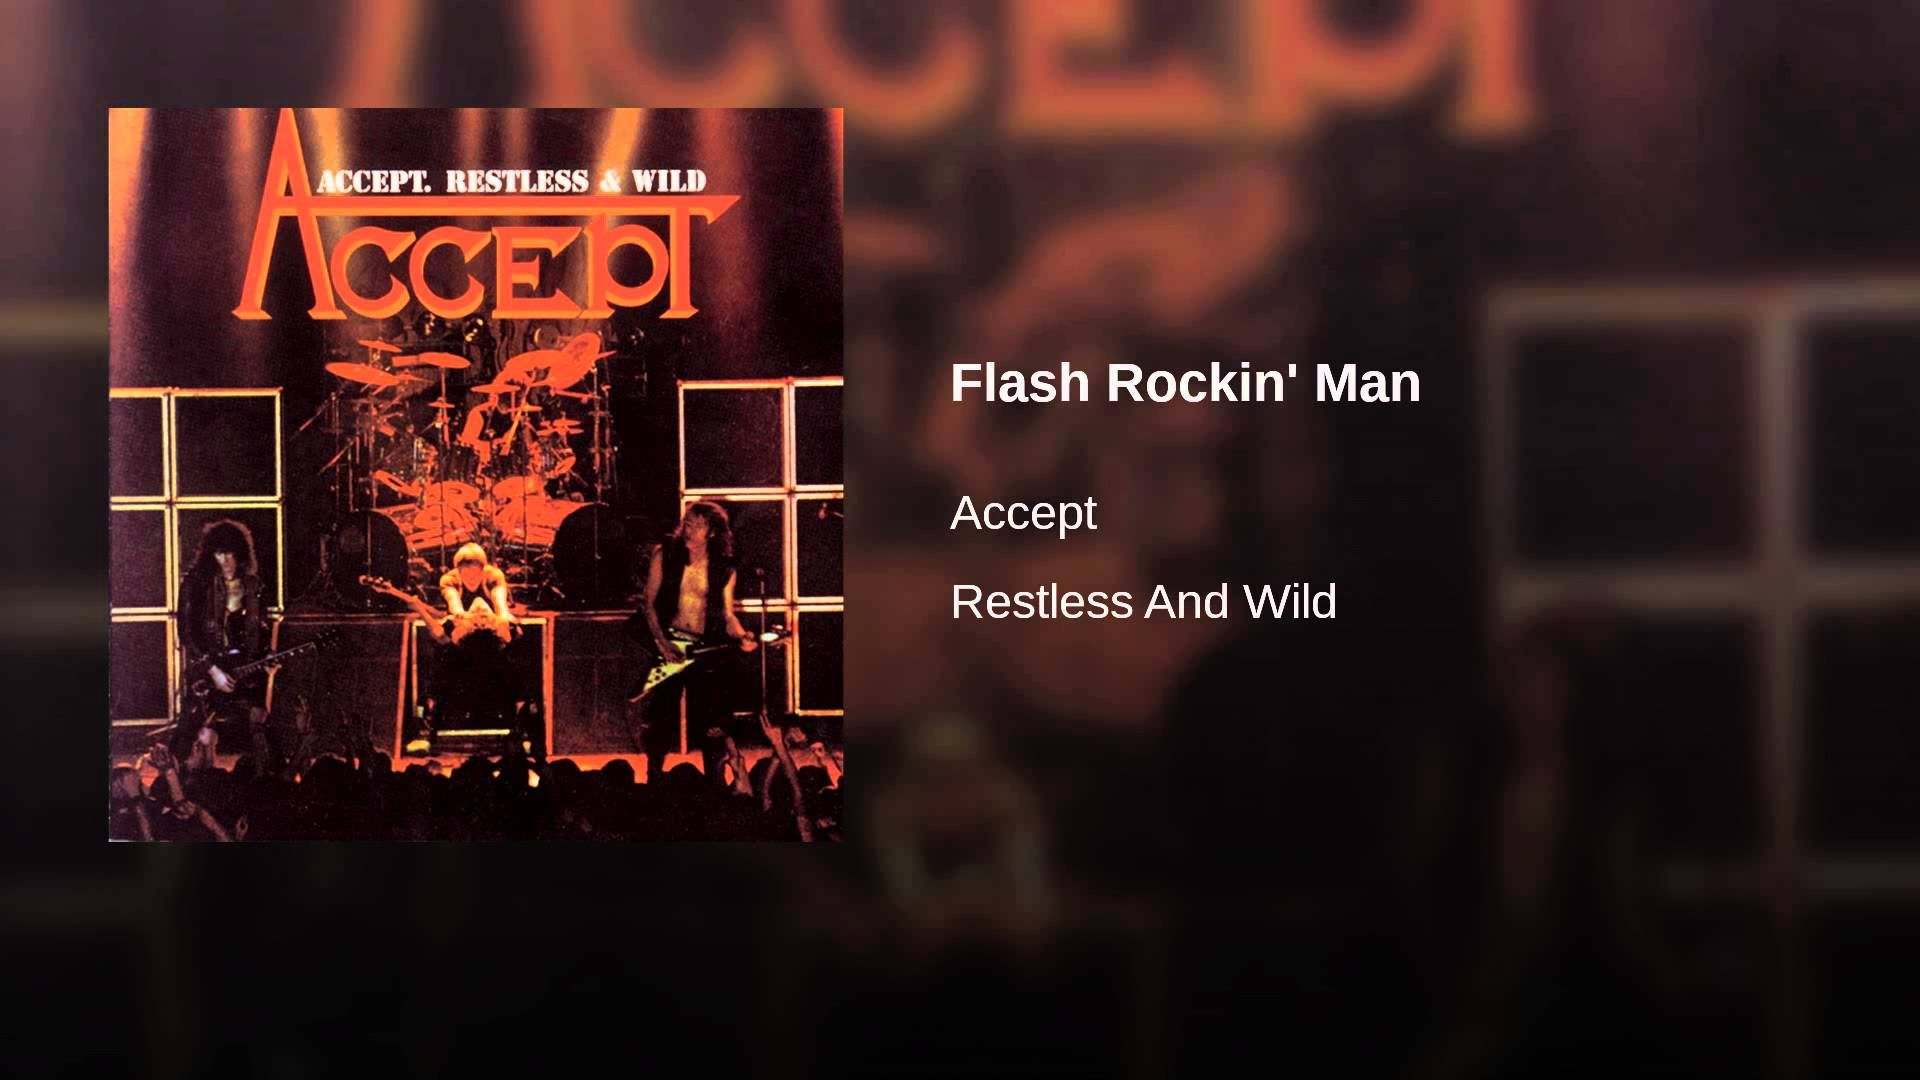 Flash Rockin' Man | bands | Music, Your head, Movie posters